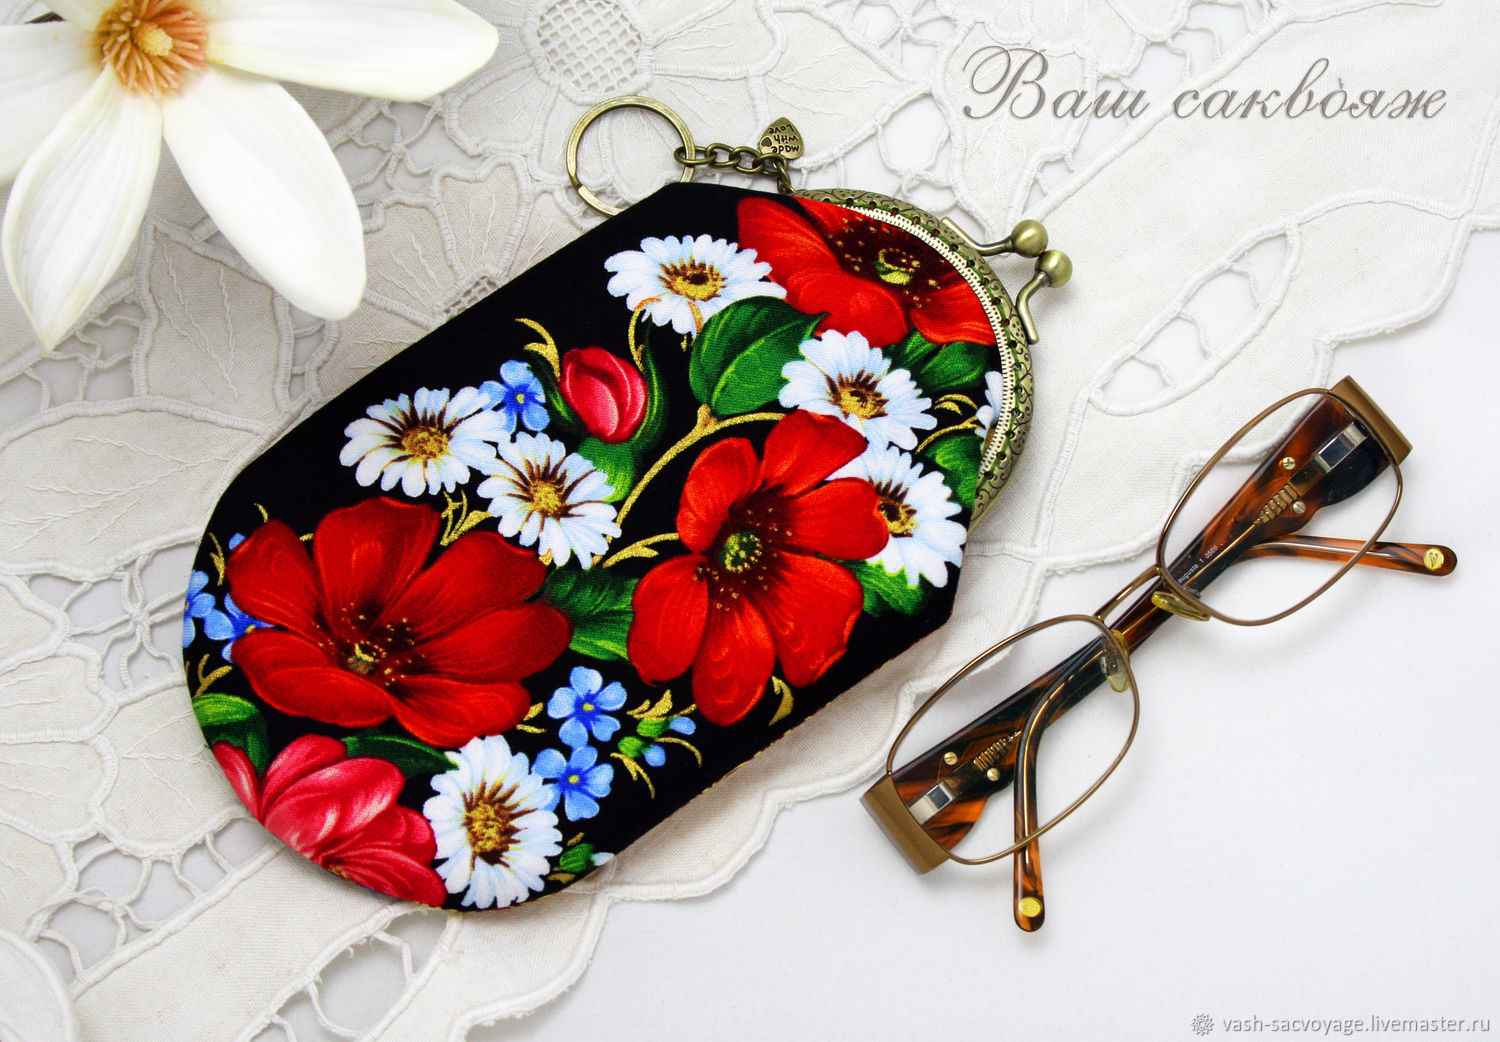 Eyeglass case with poppies and daisies